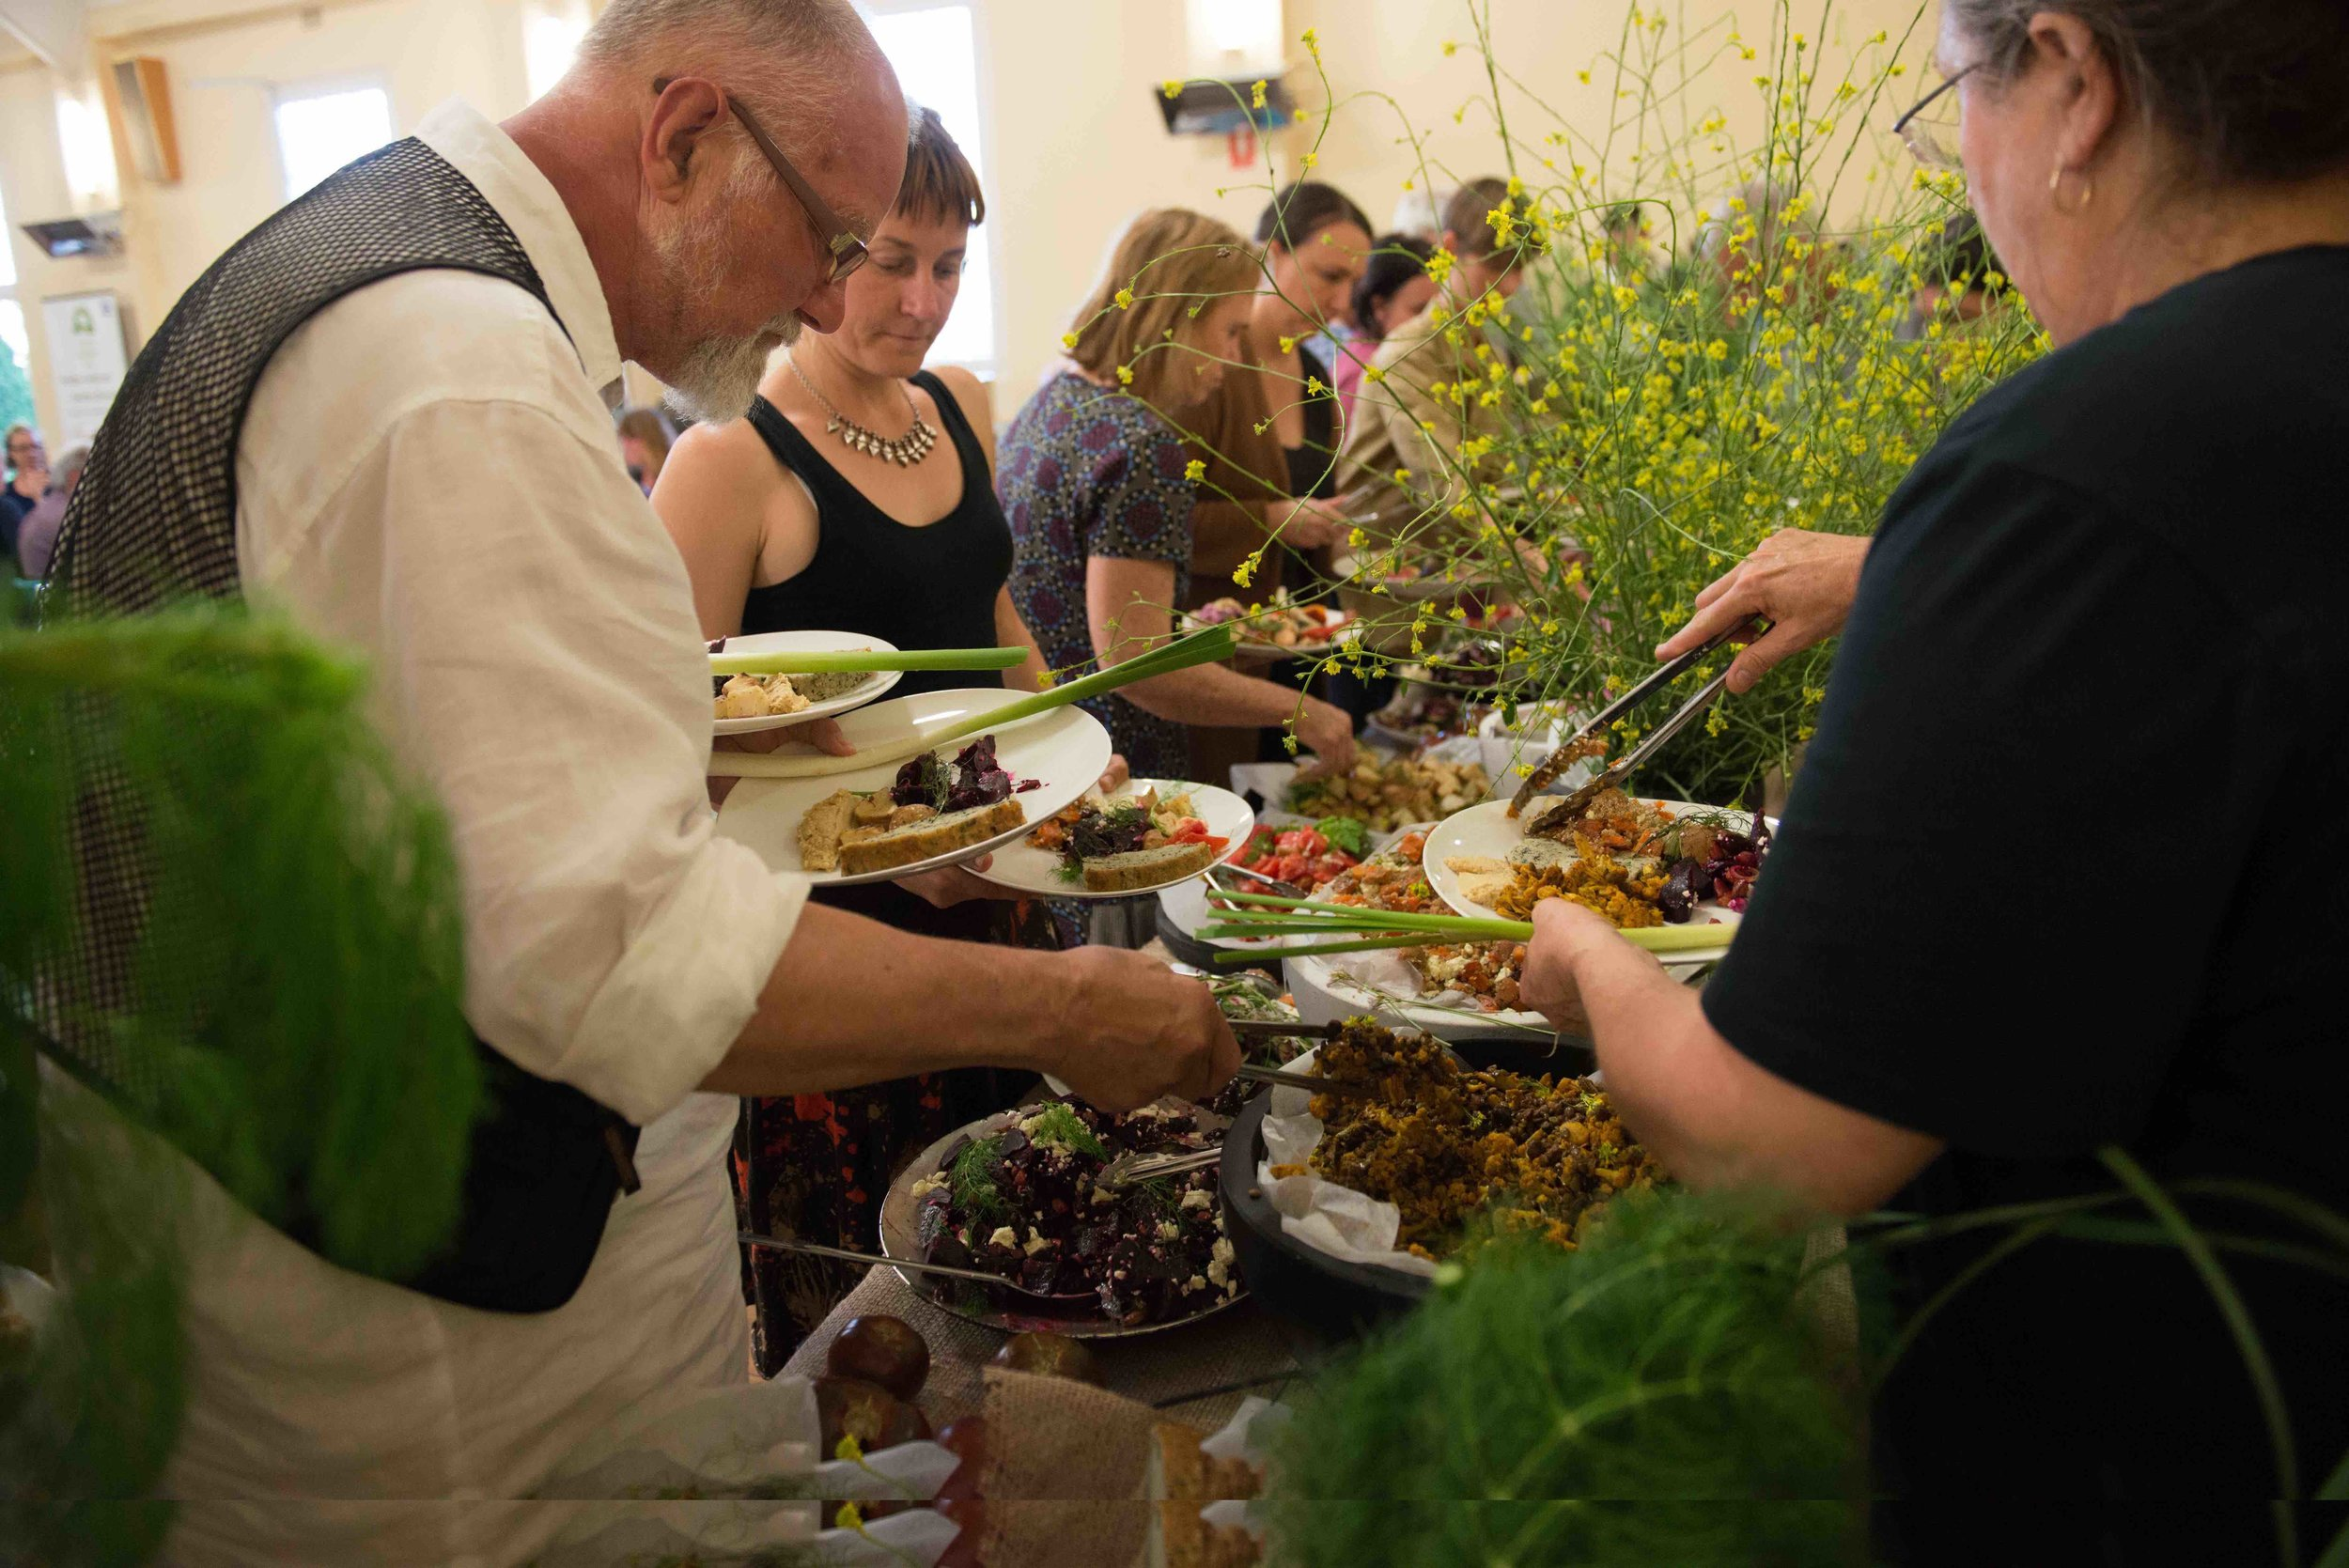 The Foragers' Feast at Futurelands2, Kandos, 2016.